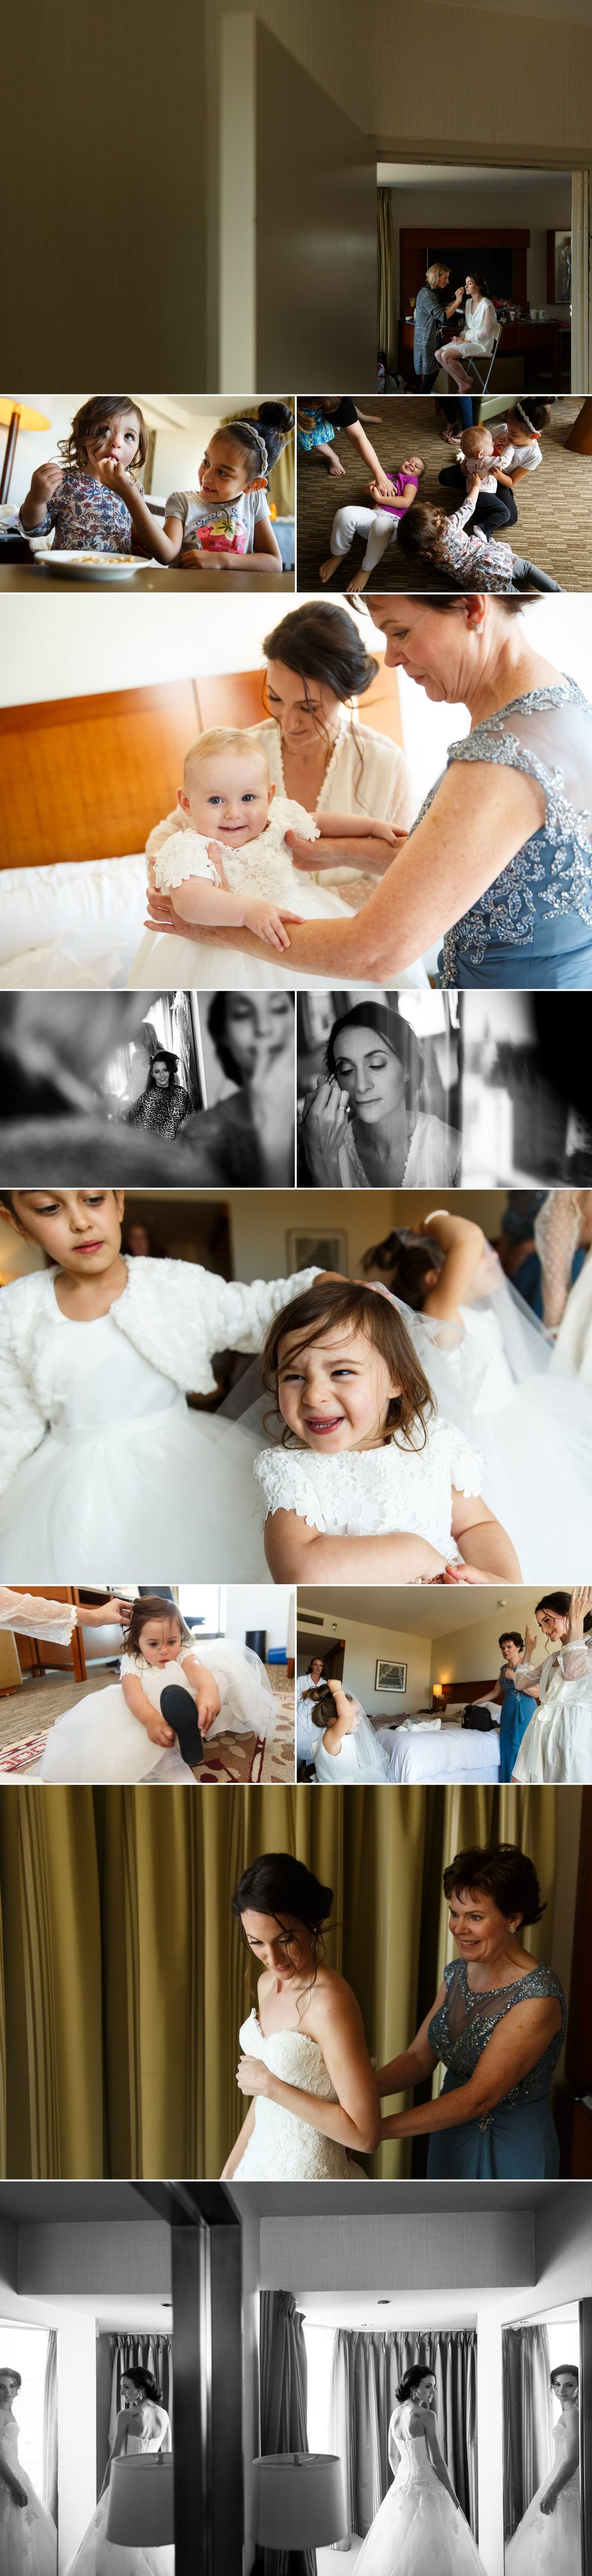 Photographs of a bride getting ready on her wedding day at the Westin hotel in Ottawa